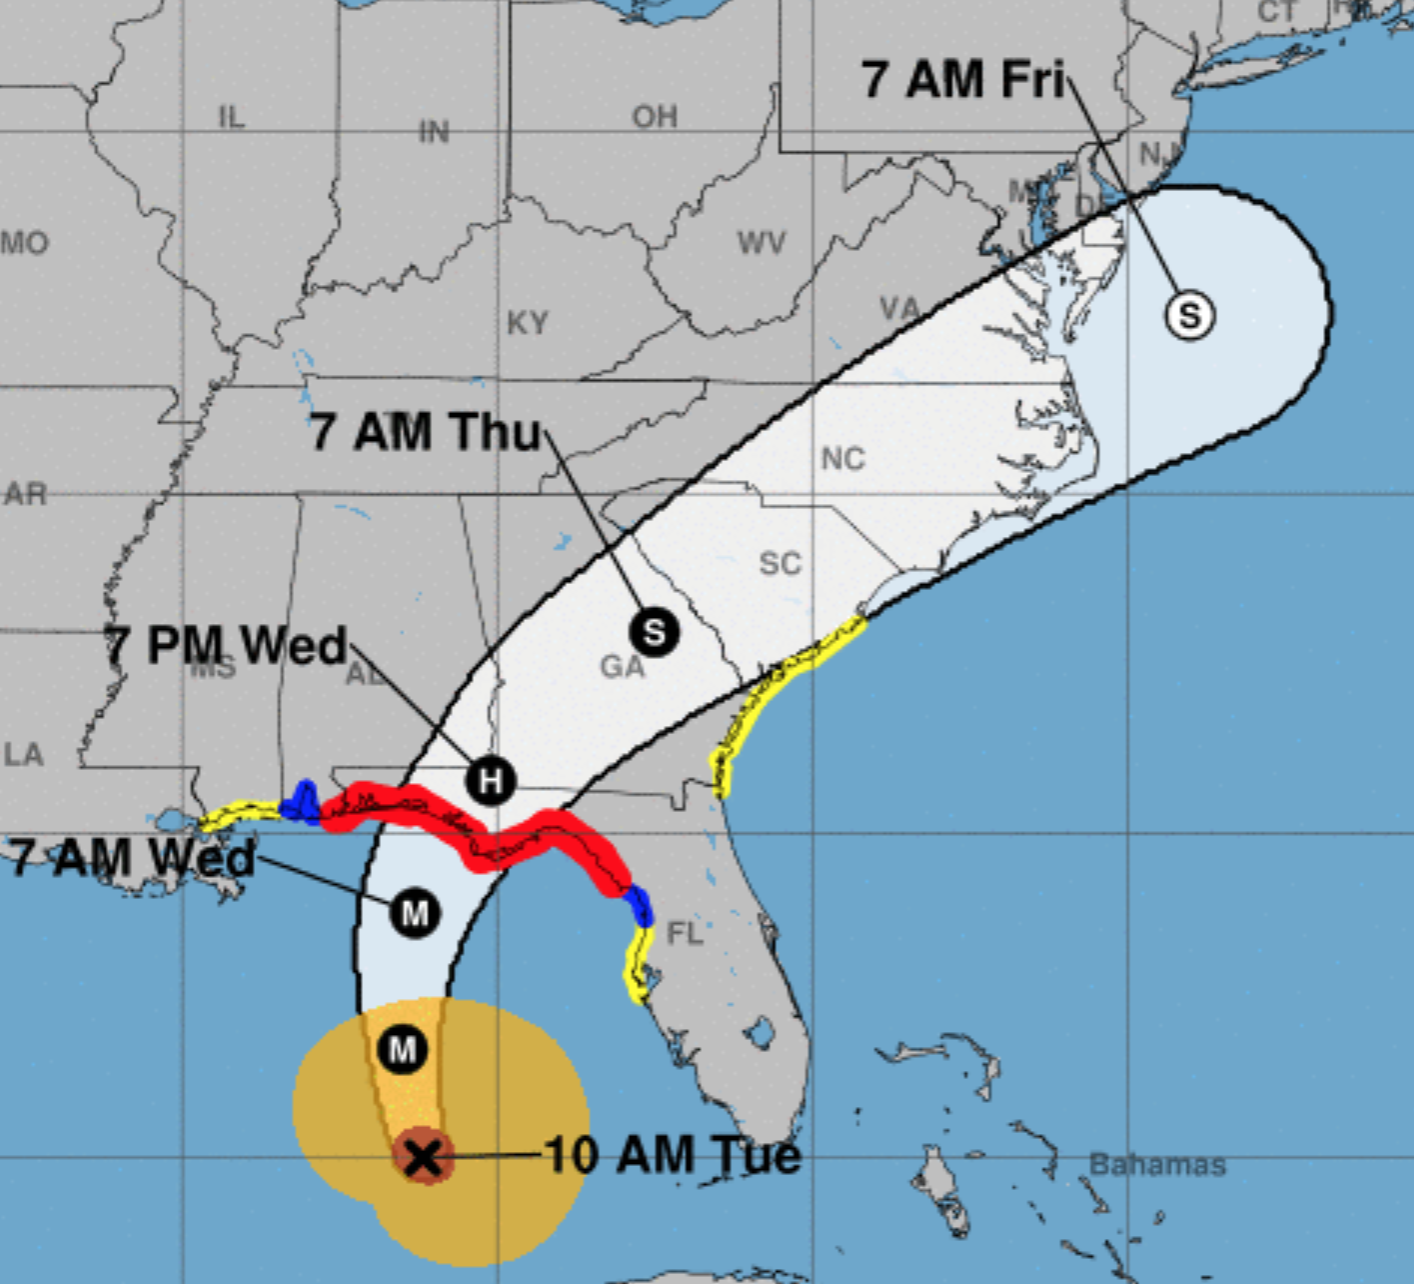 MSE Creative Consulting Blog: 9:53am CDT Update on Michael